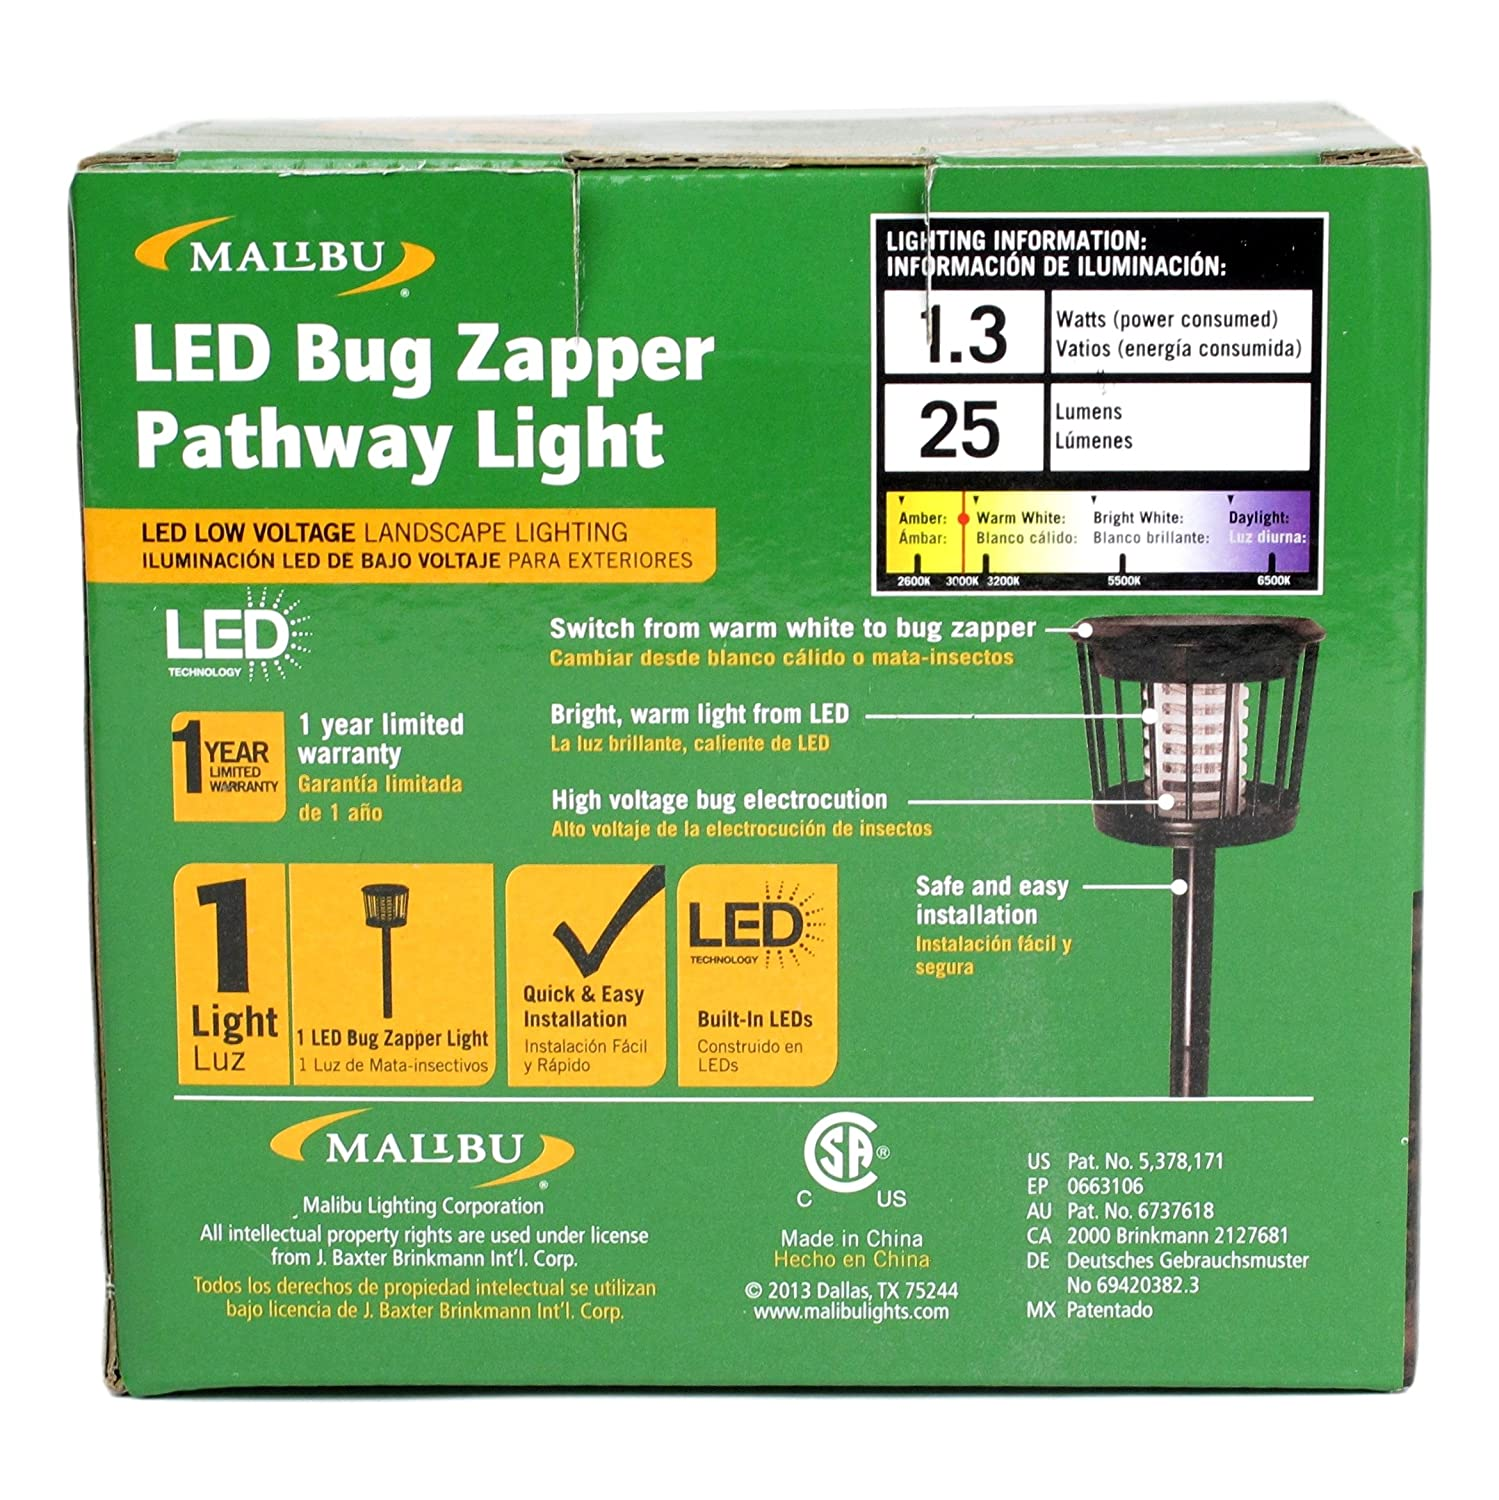 Malibu LED Bug Zapper Pathway Landscape Light, Black Metal, Zaps Bugs and Mosquitos - - Amazon.com